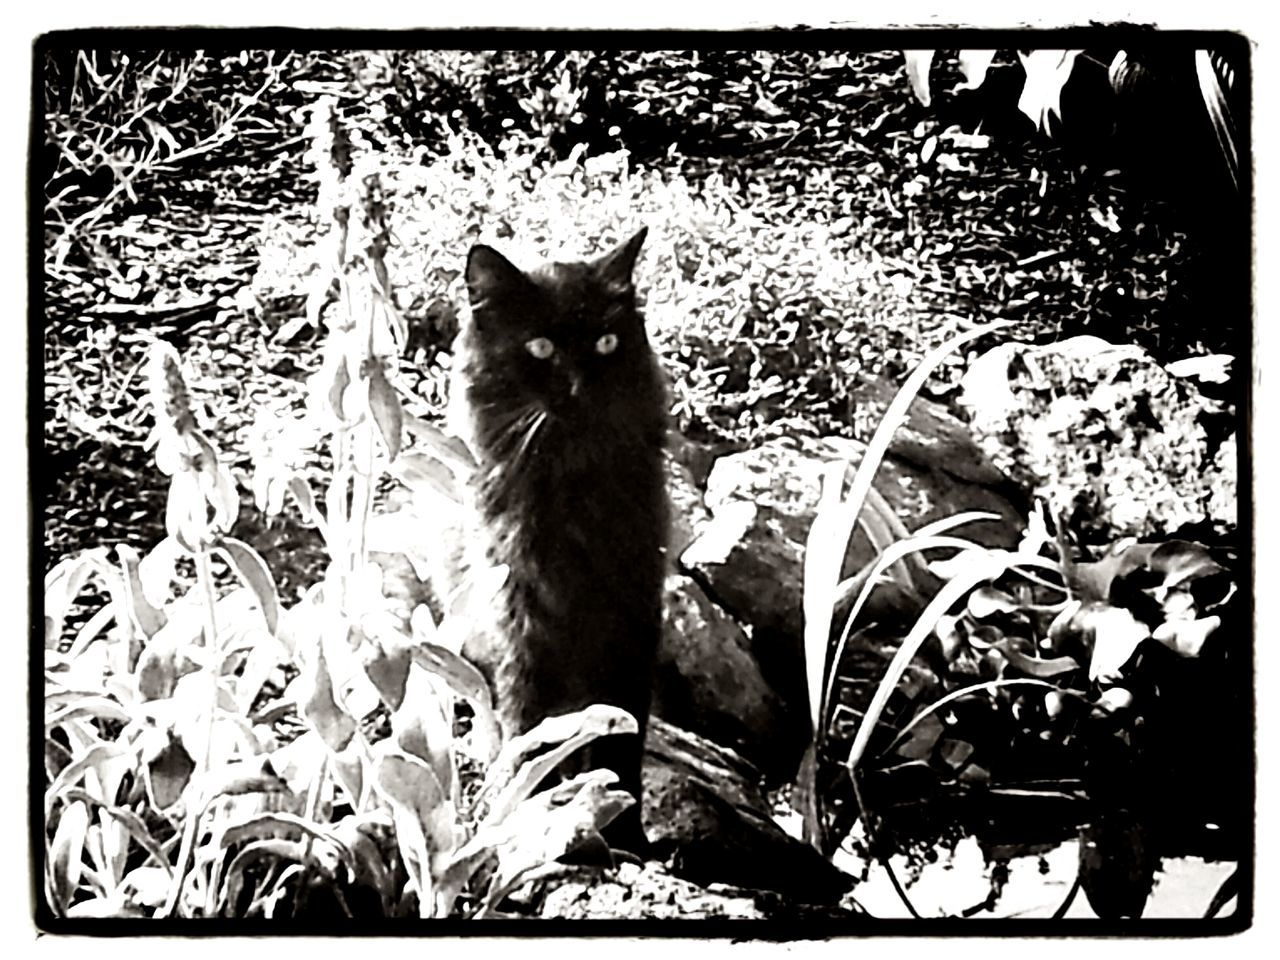 domestic cat, animal themes, pets, domestic animals, mammal, cat, no people, one animal, feline, sitting, portrait, day, looking at camera, outdoors, nature